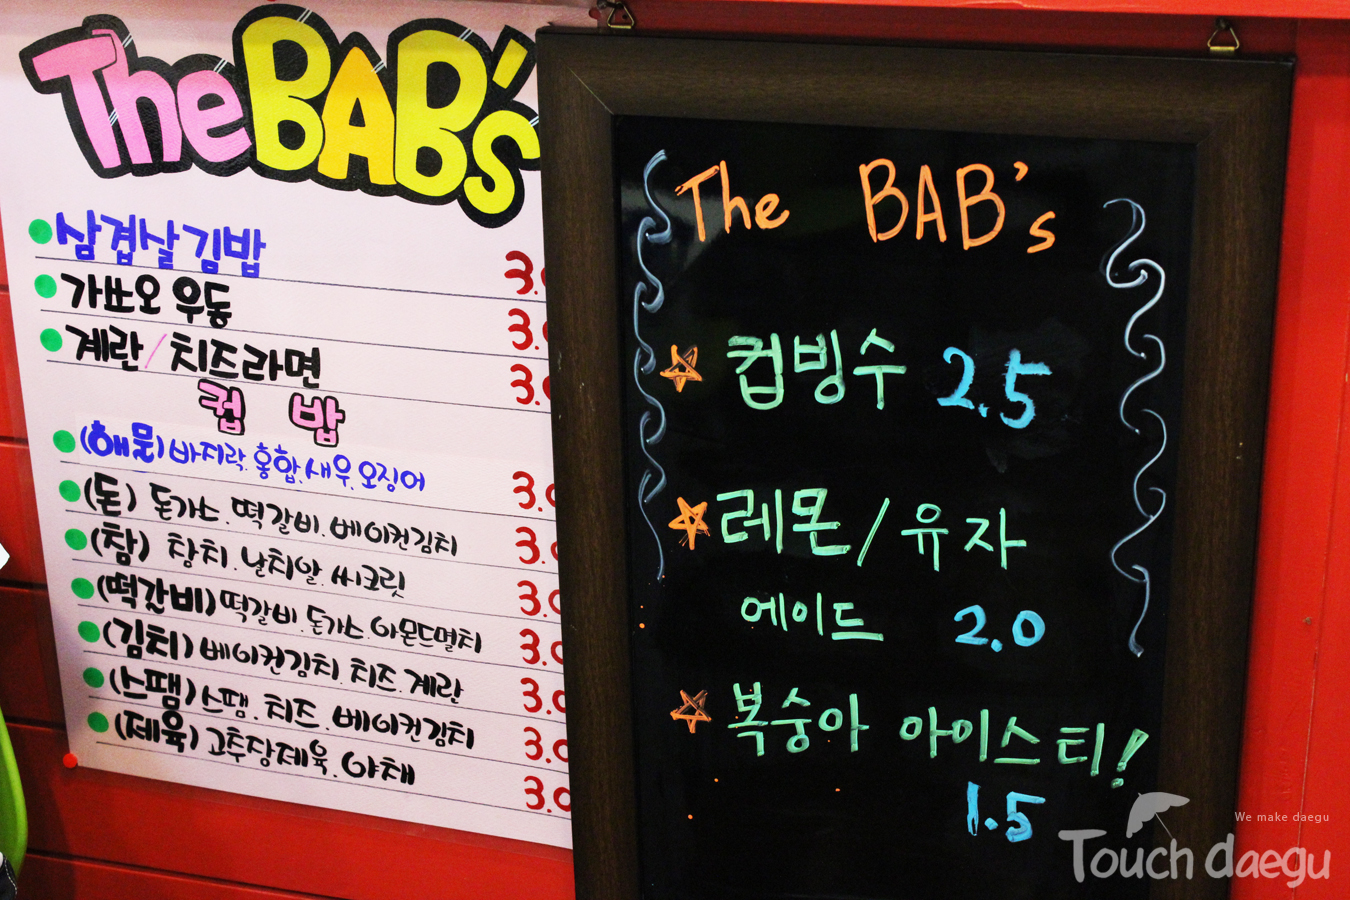 A menu of the BAB's